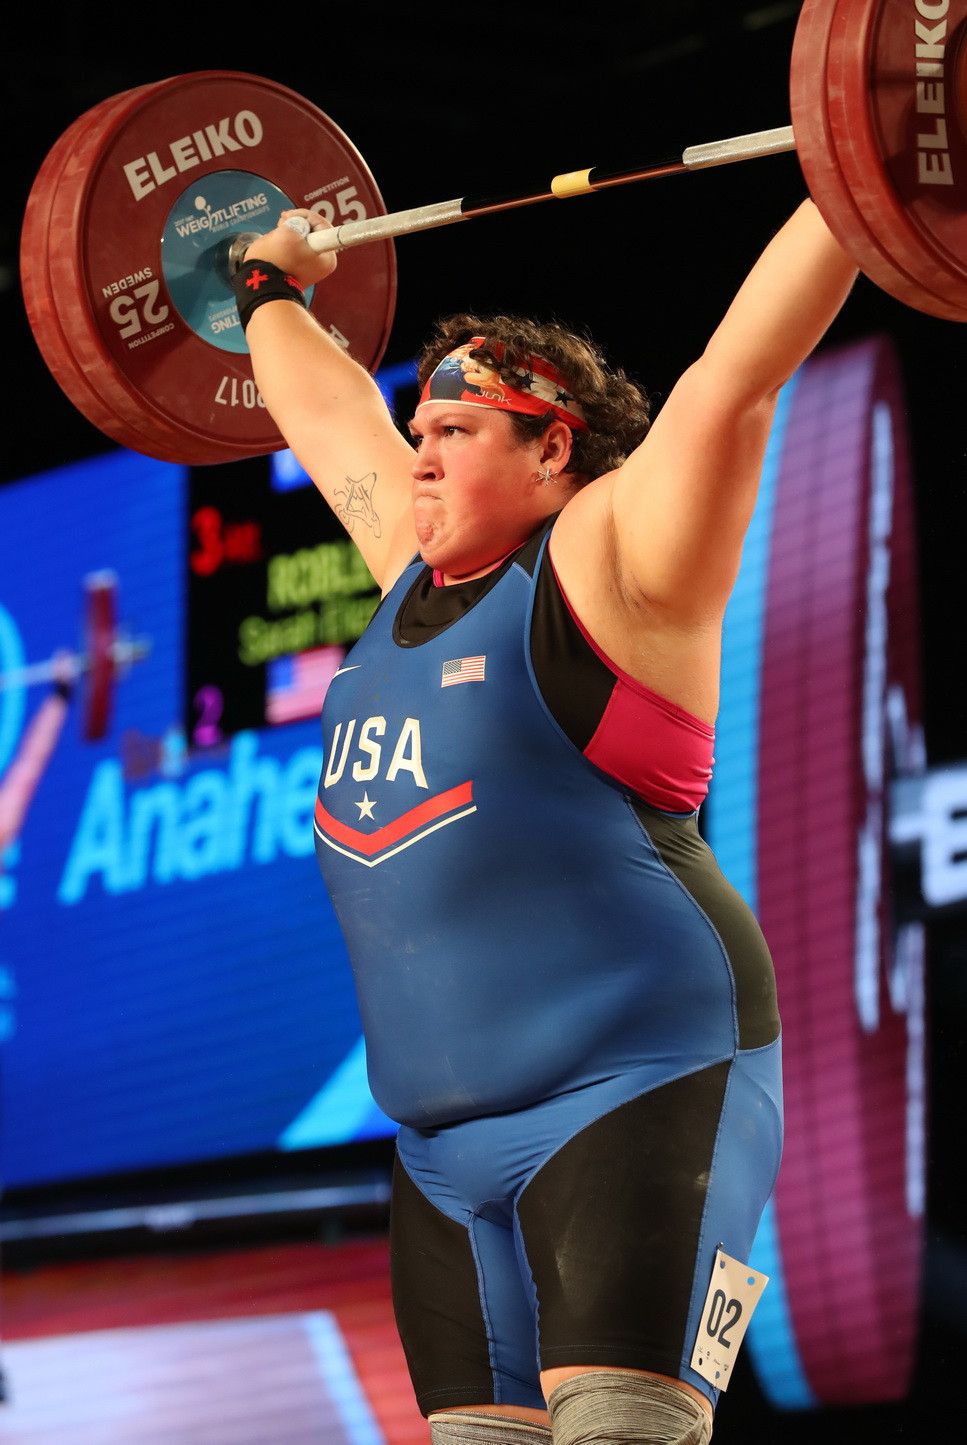 Robles registered an unrivalled total of 284kg in the women's over 90kg category on the final day of action at the 2017 International Weightlifting Federation World Championships in Anaheim ©IWF